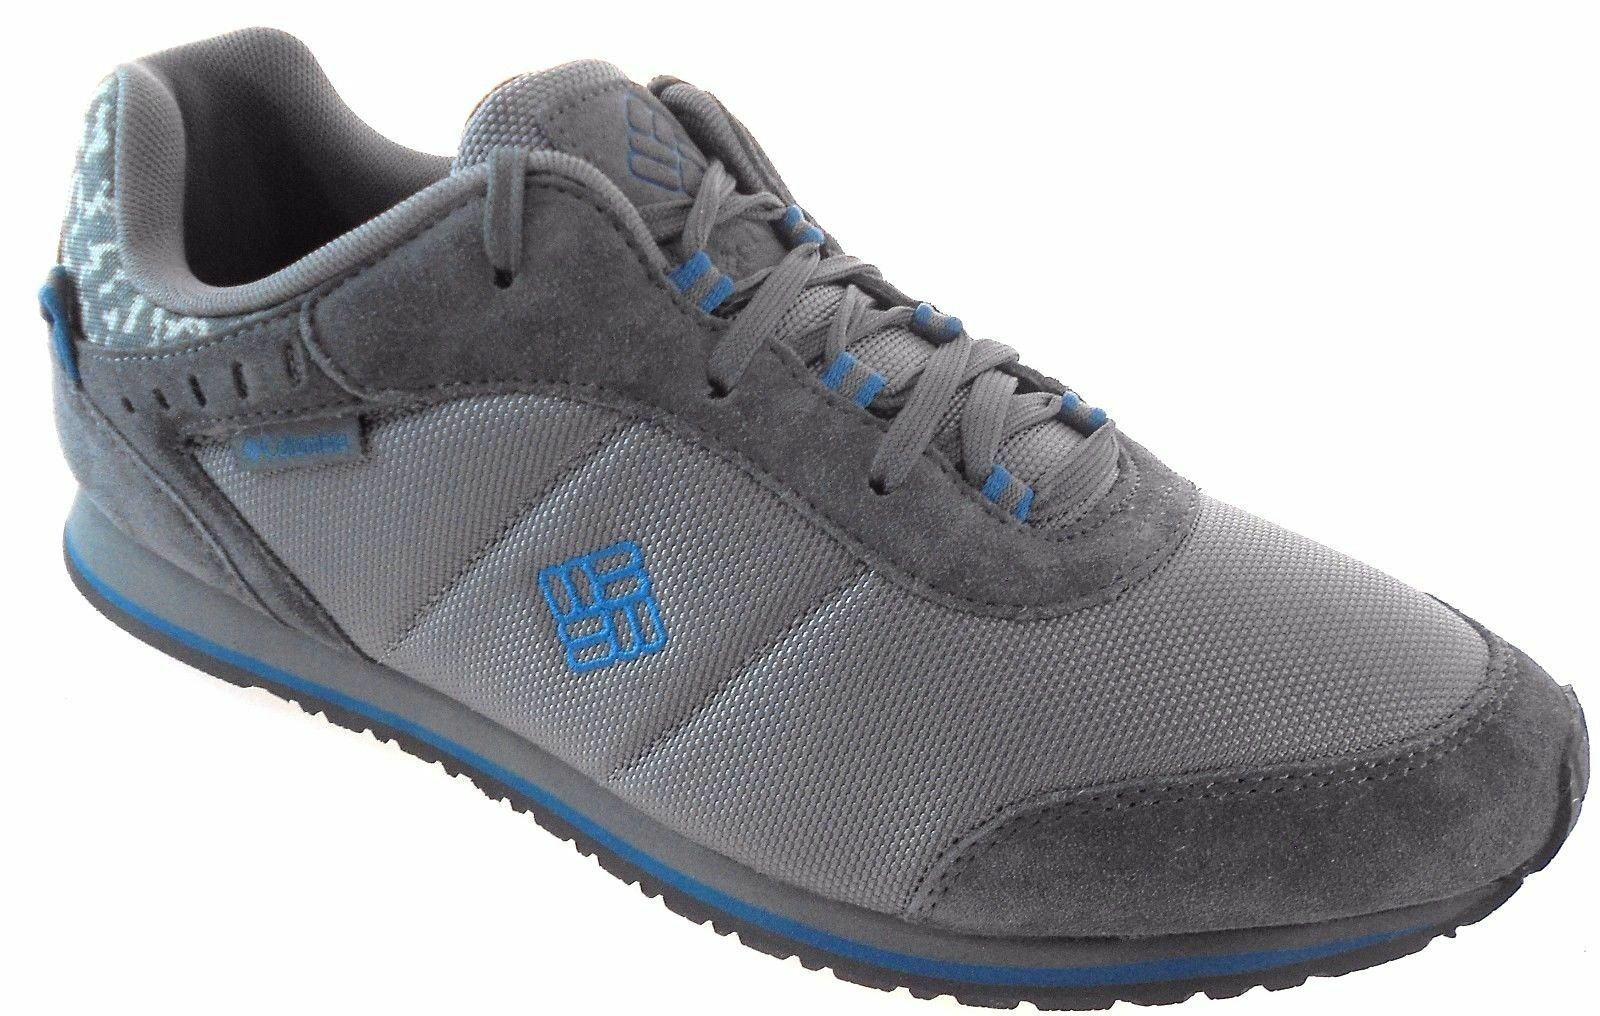 New Mens Columbia  Pipestone  Walking shoes